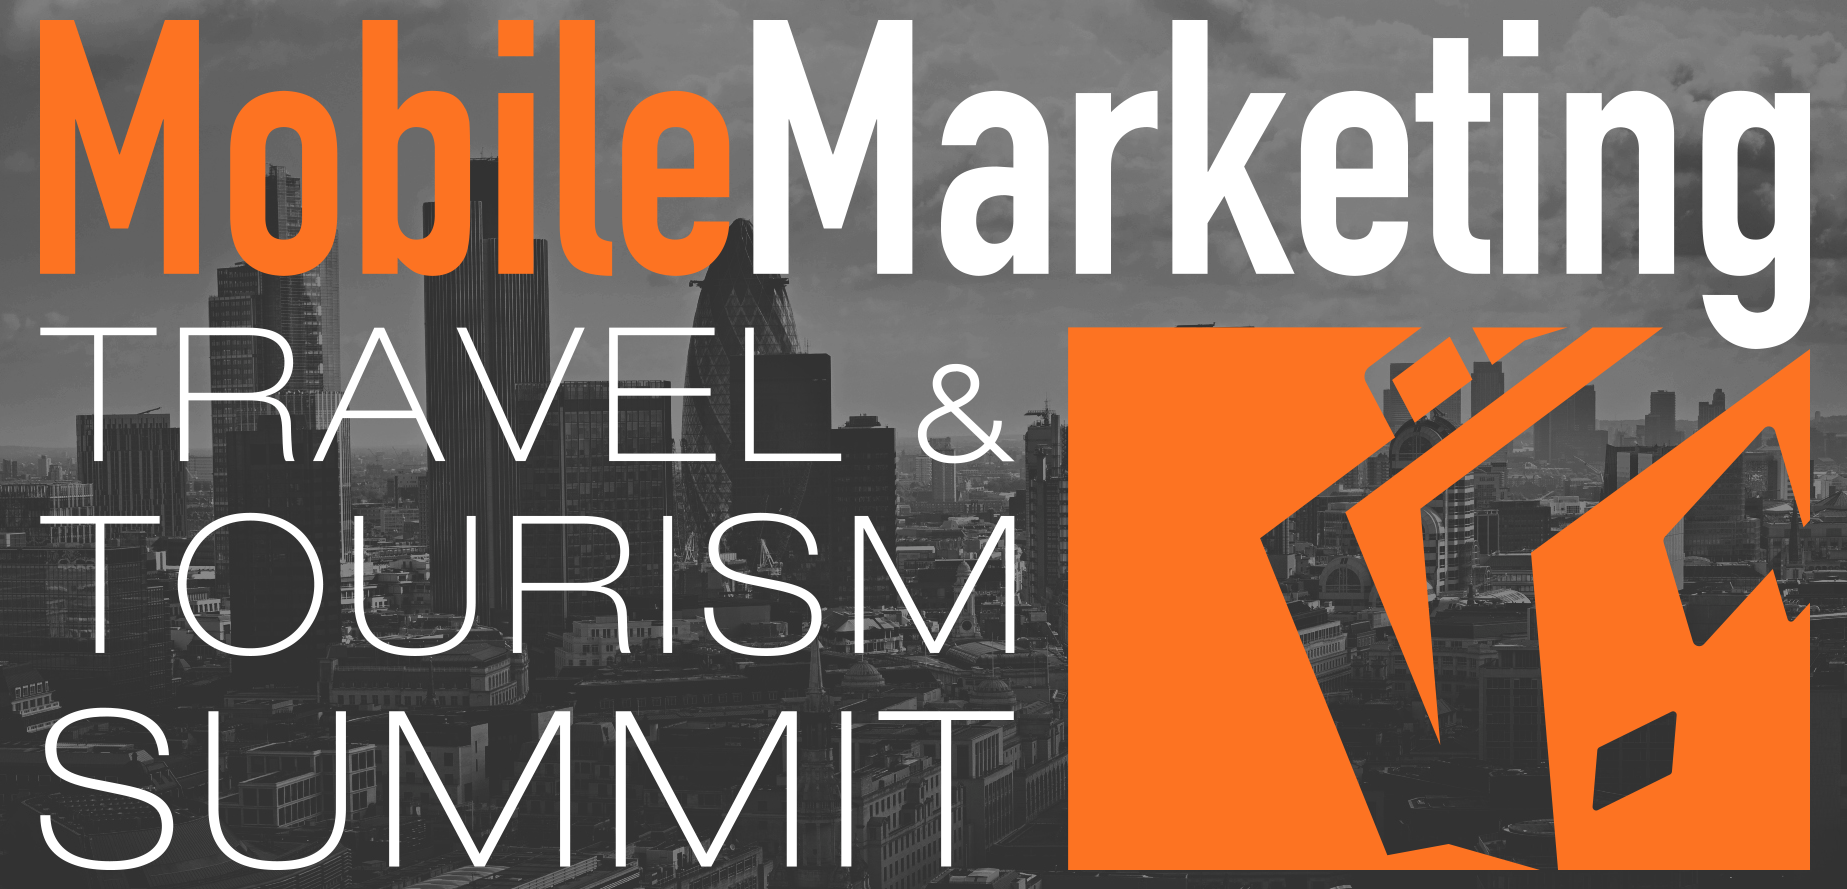 Hailo, First Great Western and Museum of London Speaking at Travel & Tourism Summit